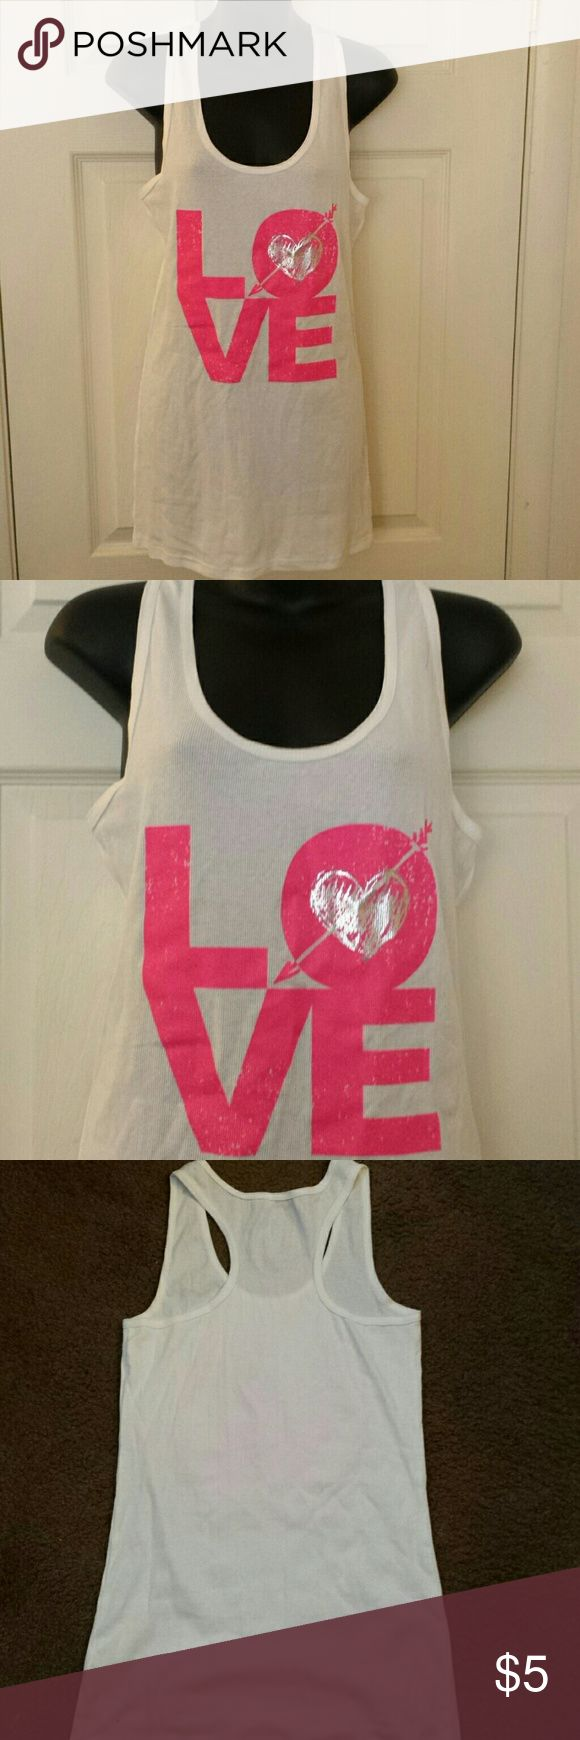 Junior plus size tank top White with love blocked in pink. Never worn. New condition No Boundaries Tops Tank Tops